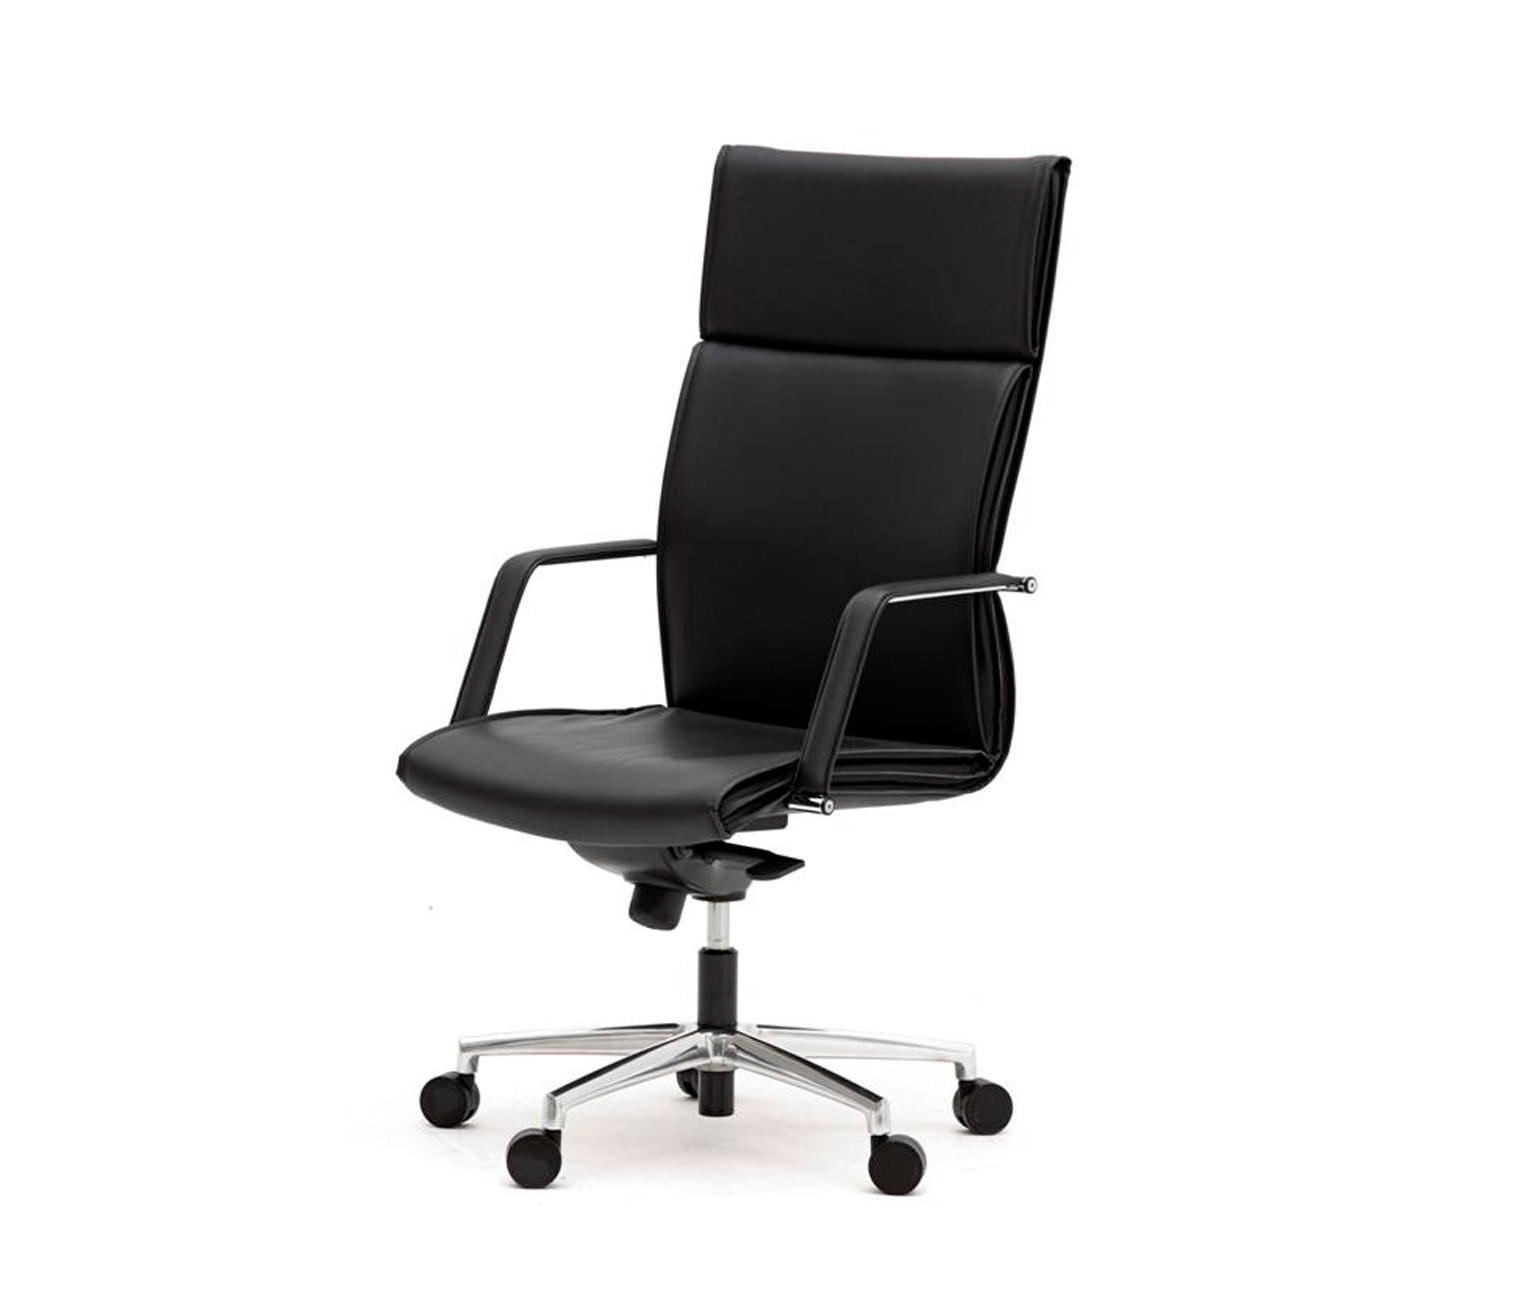 German Executive Office Chairs Intended For Newest Seben High Back Chair – Executive Chairs From Nurus (View 10 of 20)